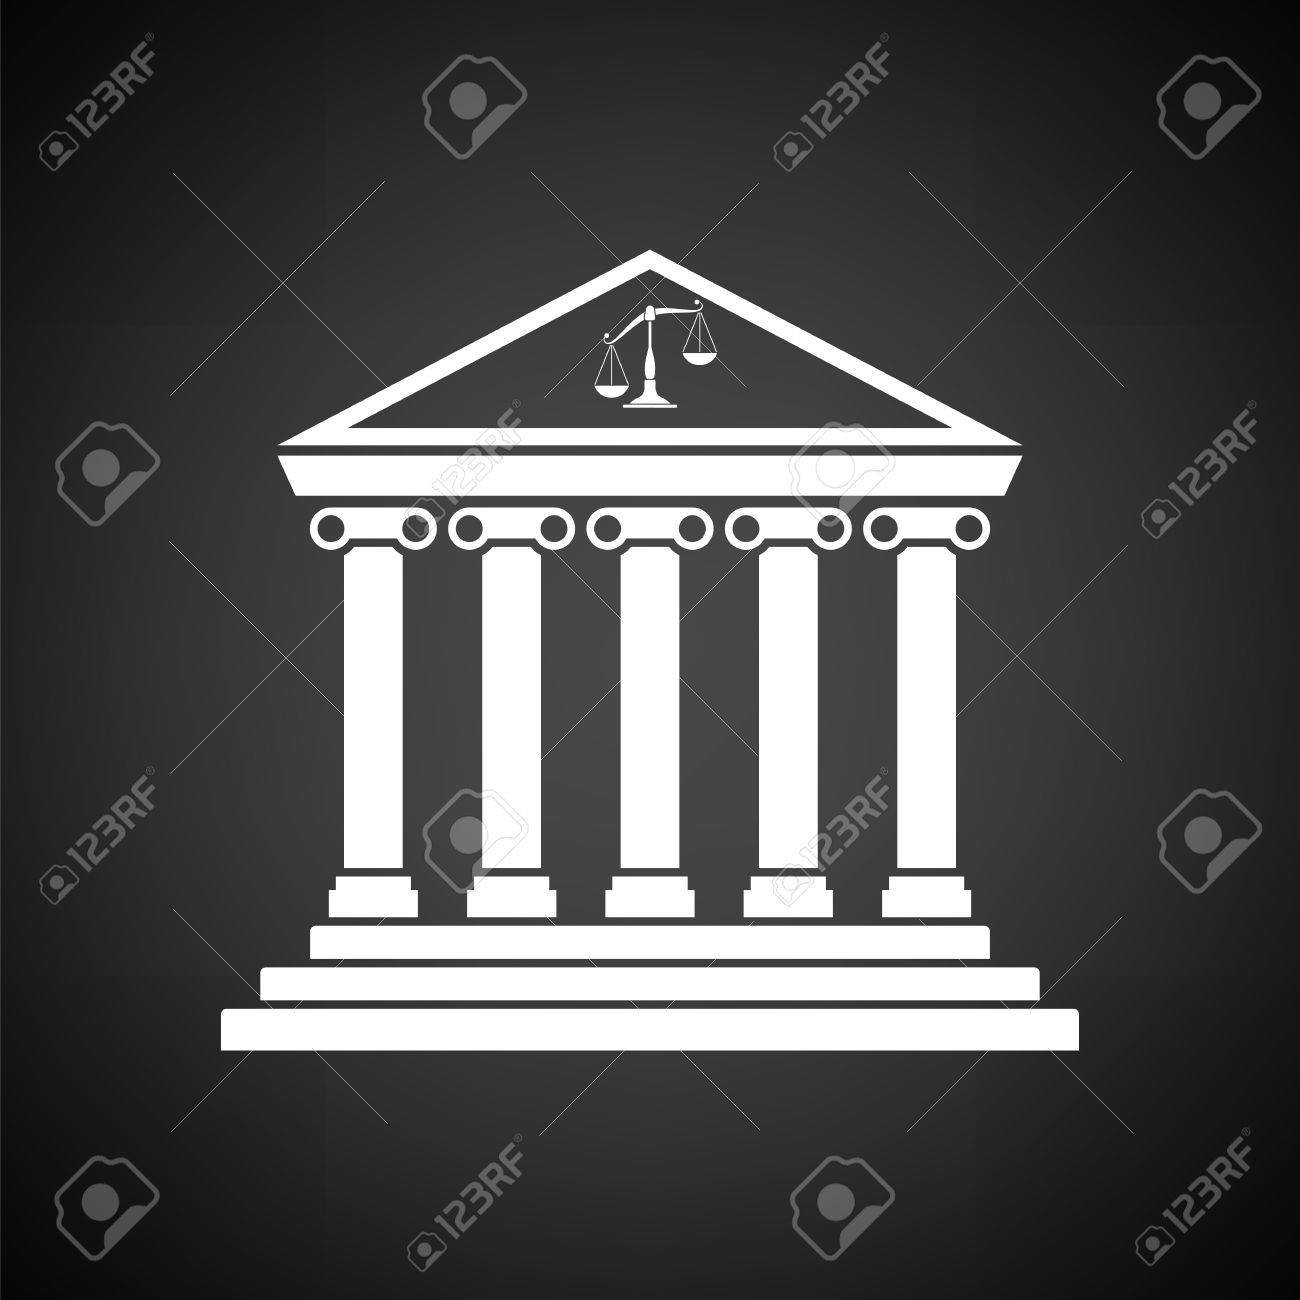 Courthouse Icon Black Background With White Vector Illustration 1300x1300